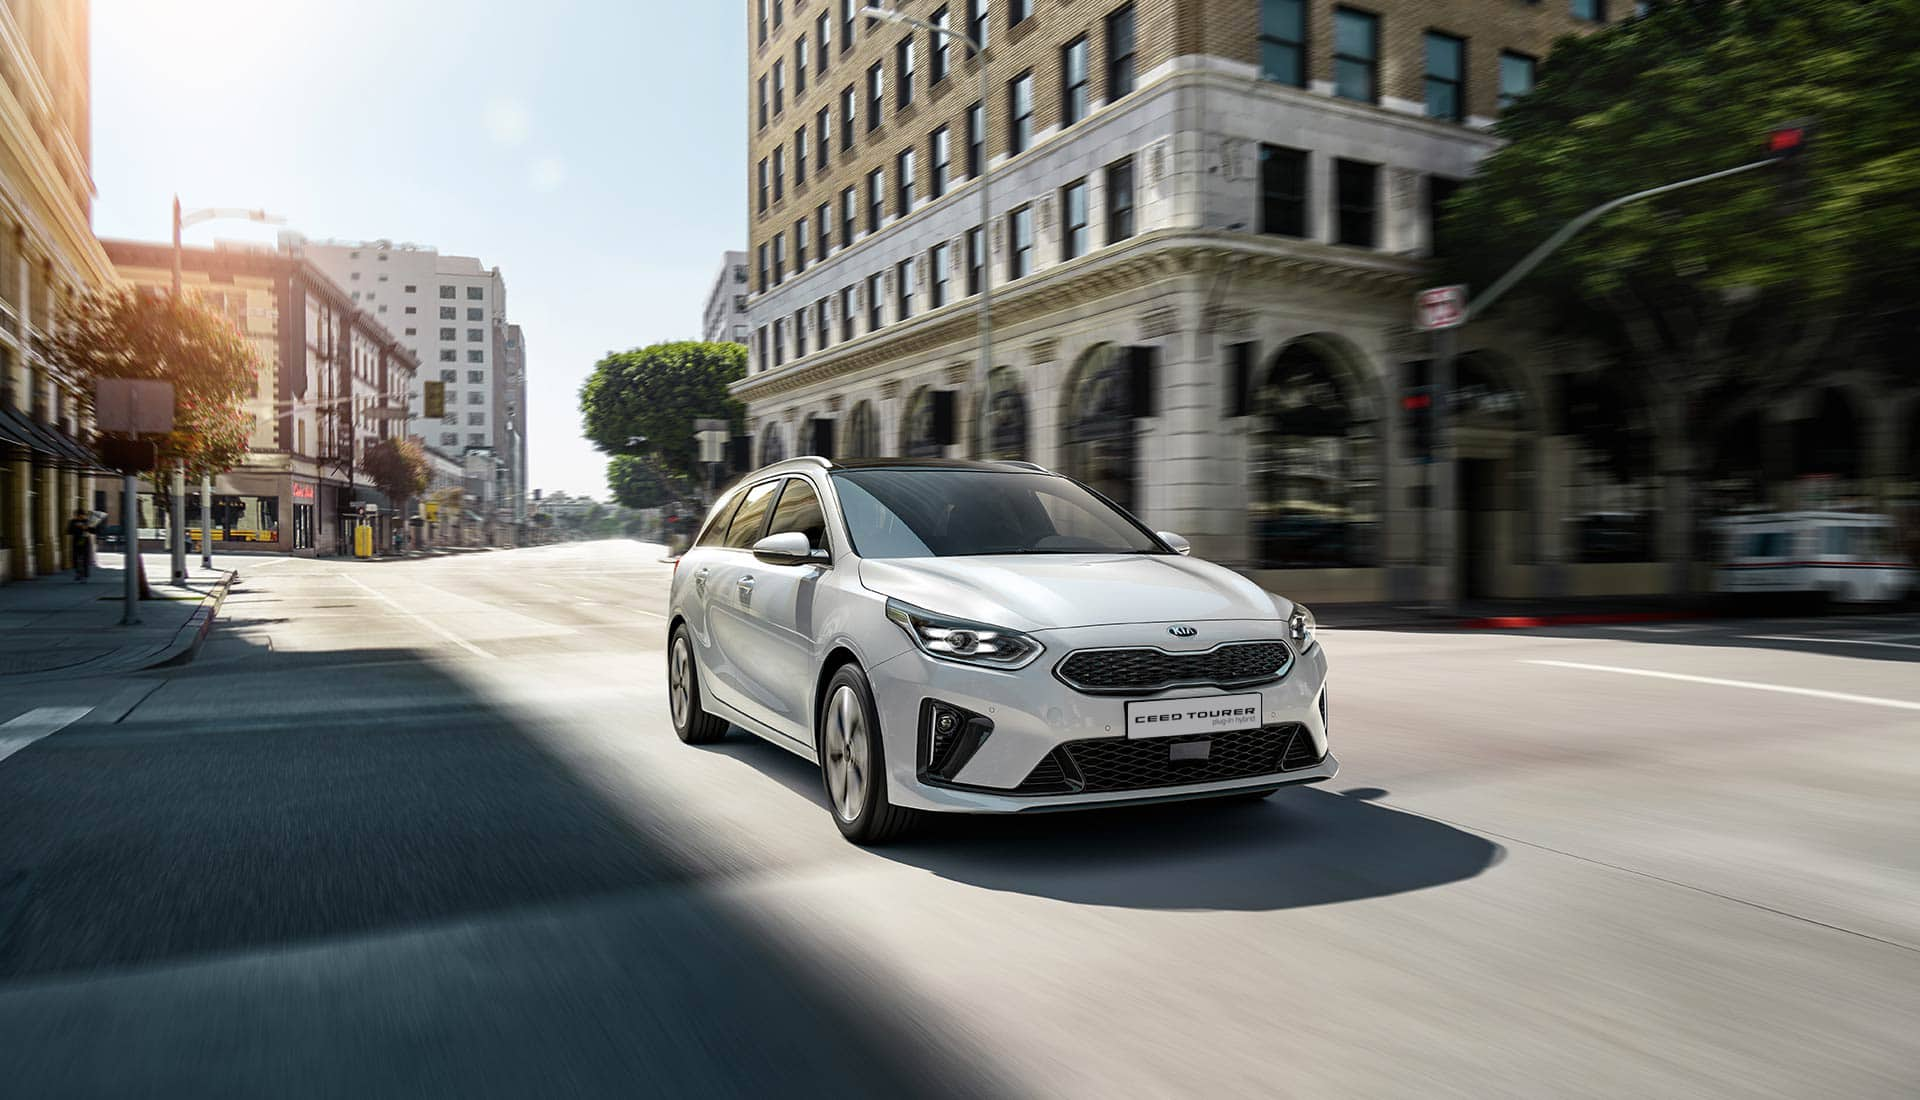 kia ceed tourer plug-in hybrid driving